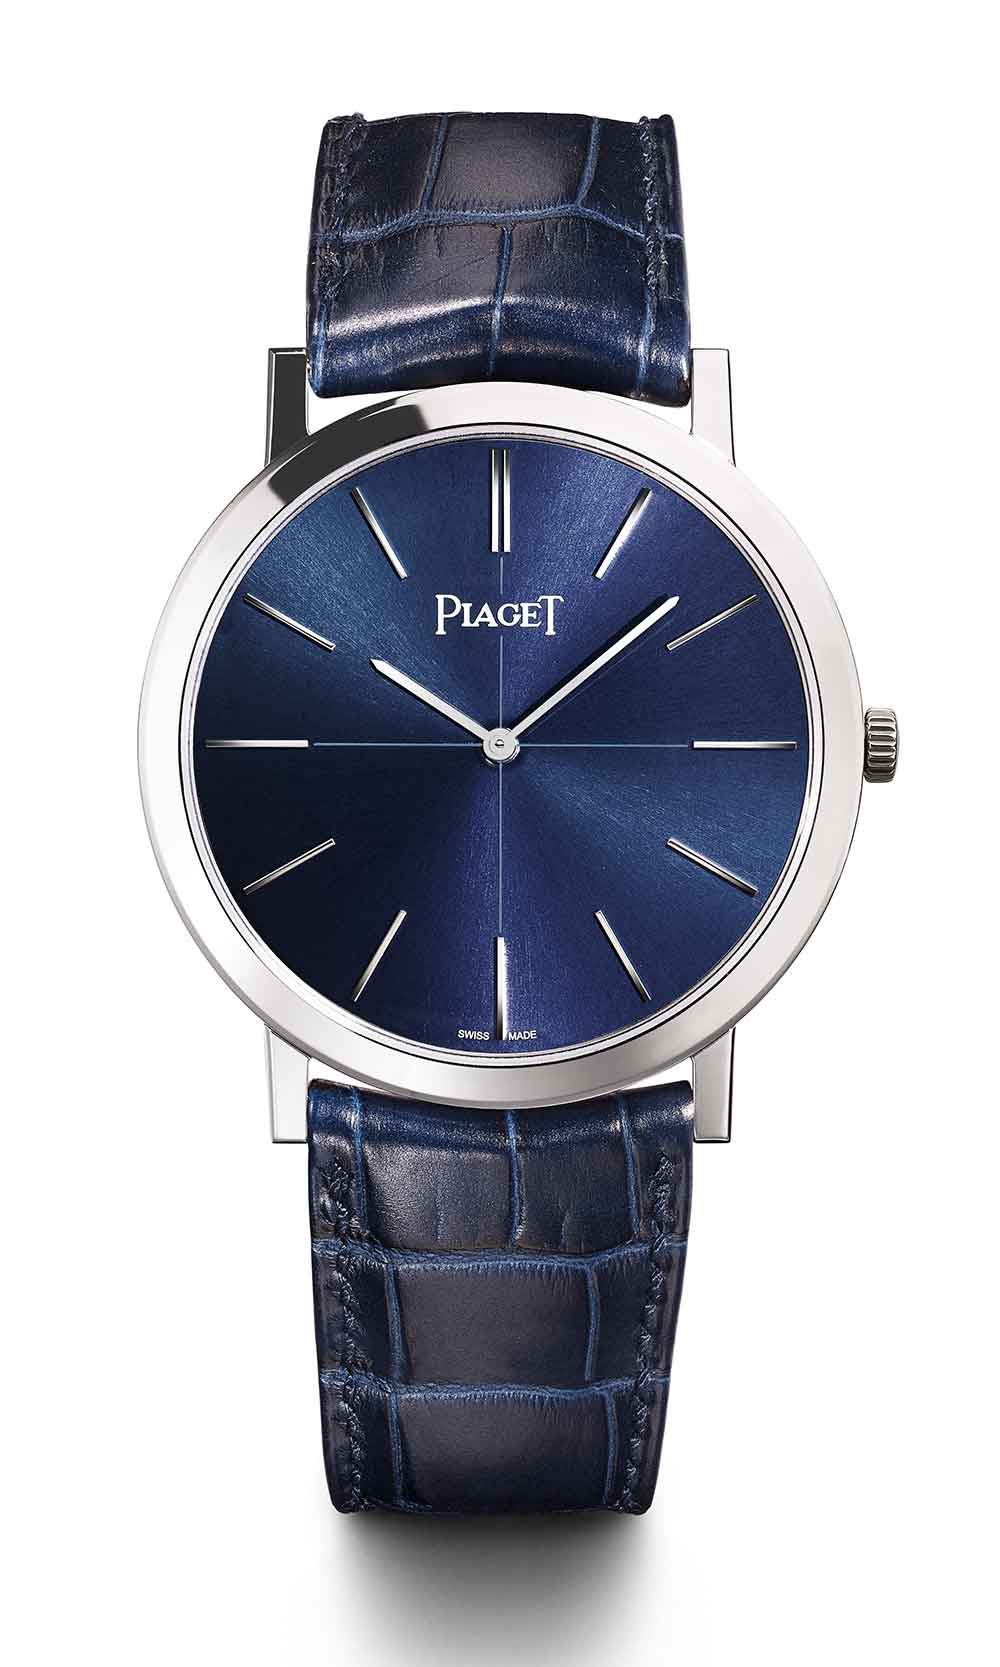 Piaget Altiplano 60th anniversary collection 38 mm hand wound, G0A42107